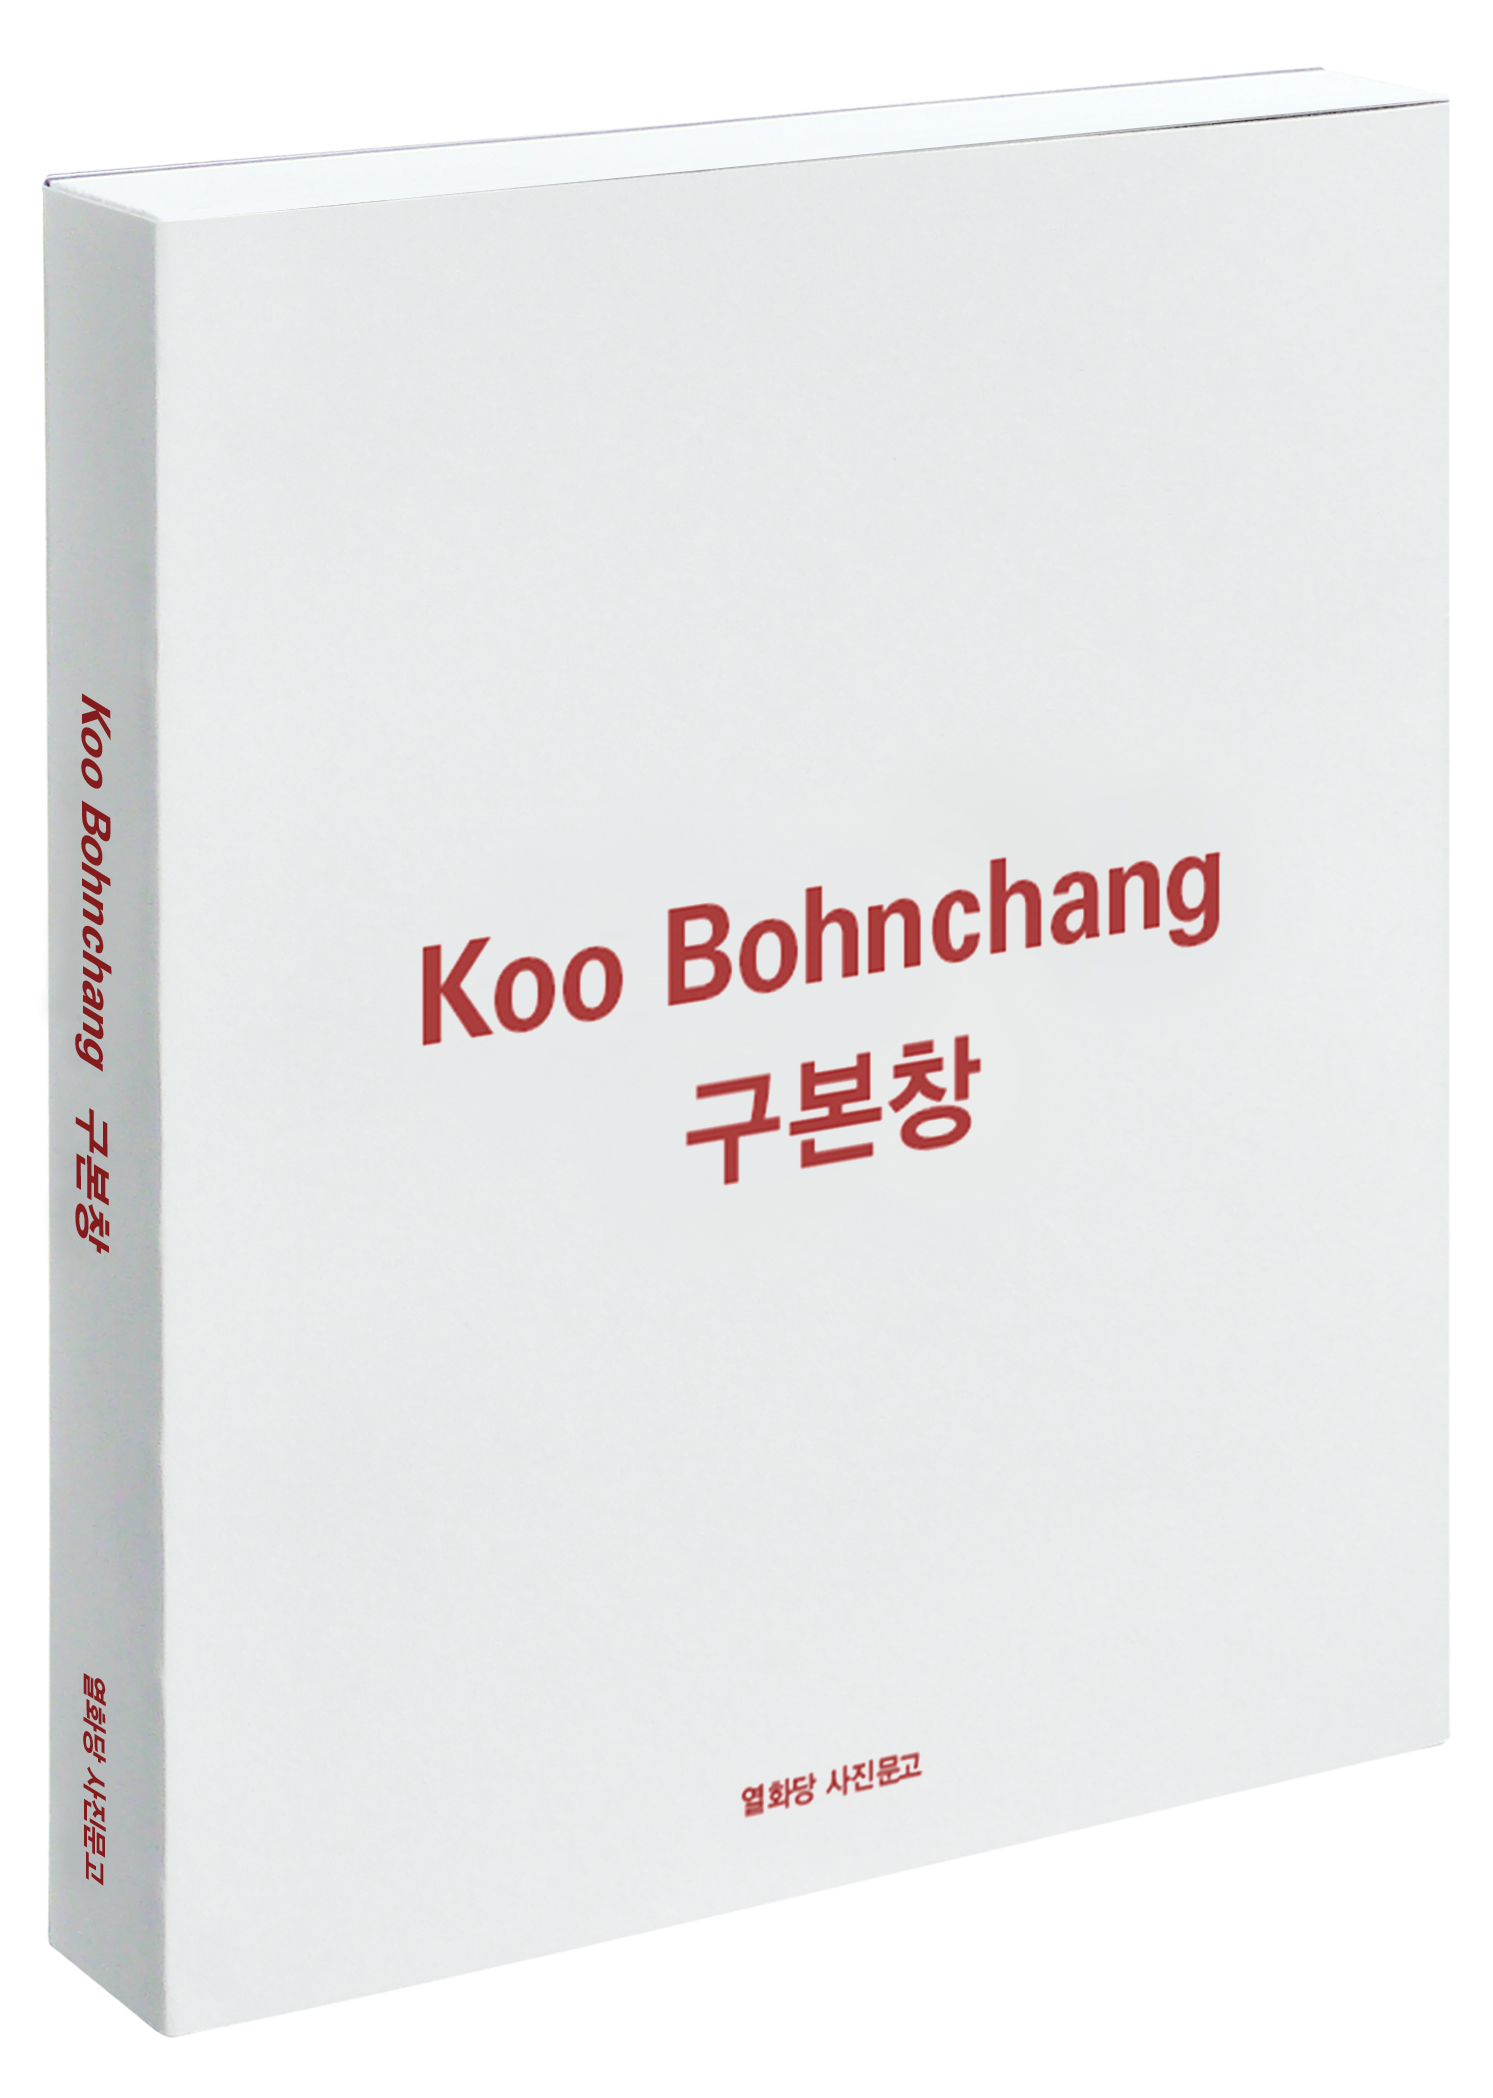 Koo Bohnchang  Youlhwadang  Size : 13.6 x 15.6cm 144 Pages Soft Cover  ©2019   Order